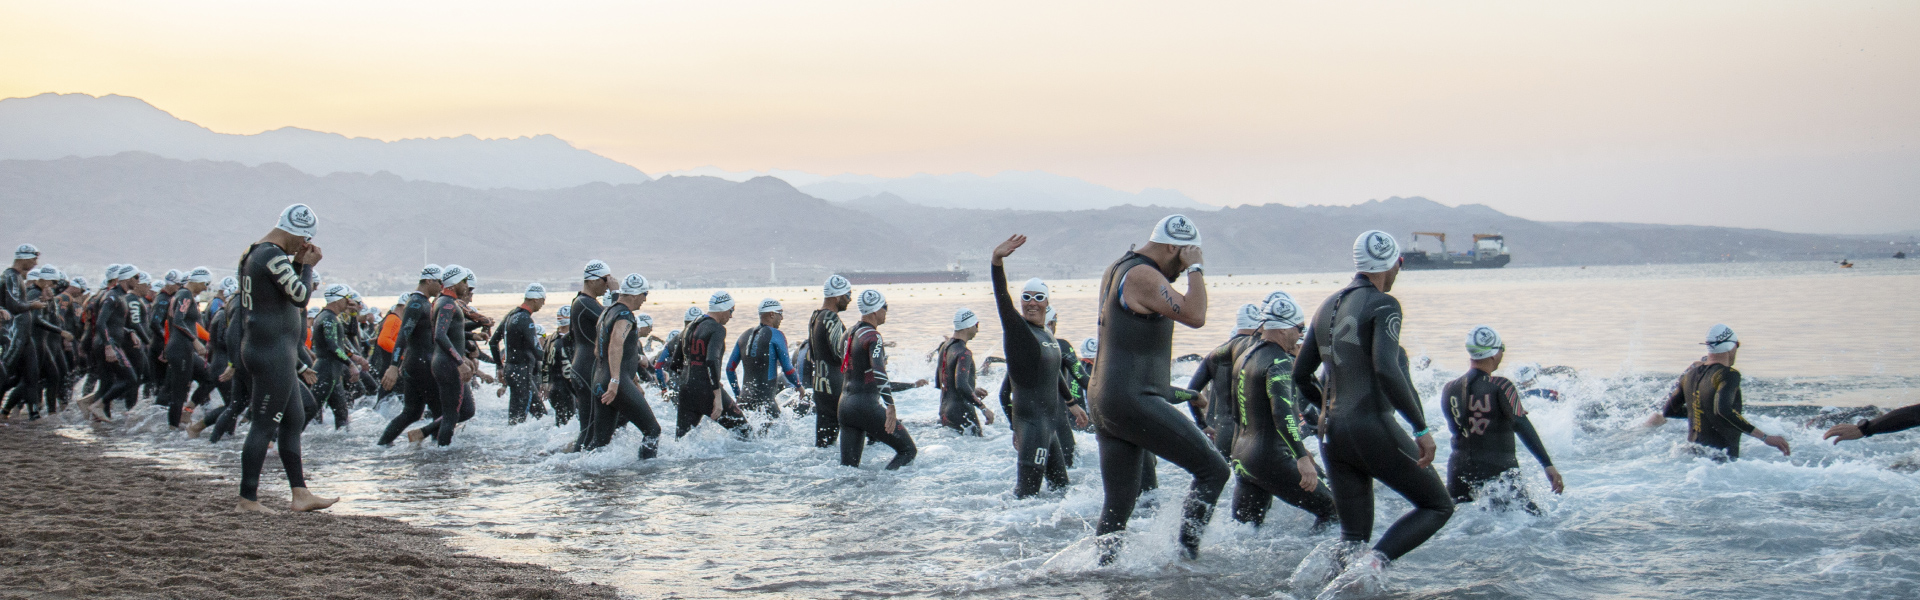 Triathlon Training Tips: Planning for the months ahead